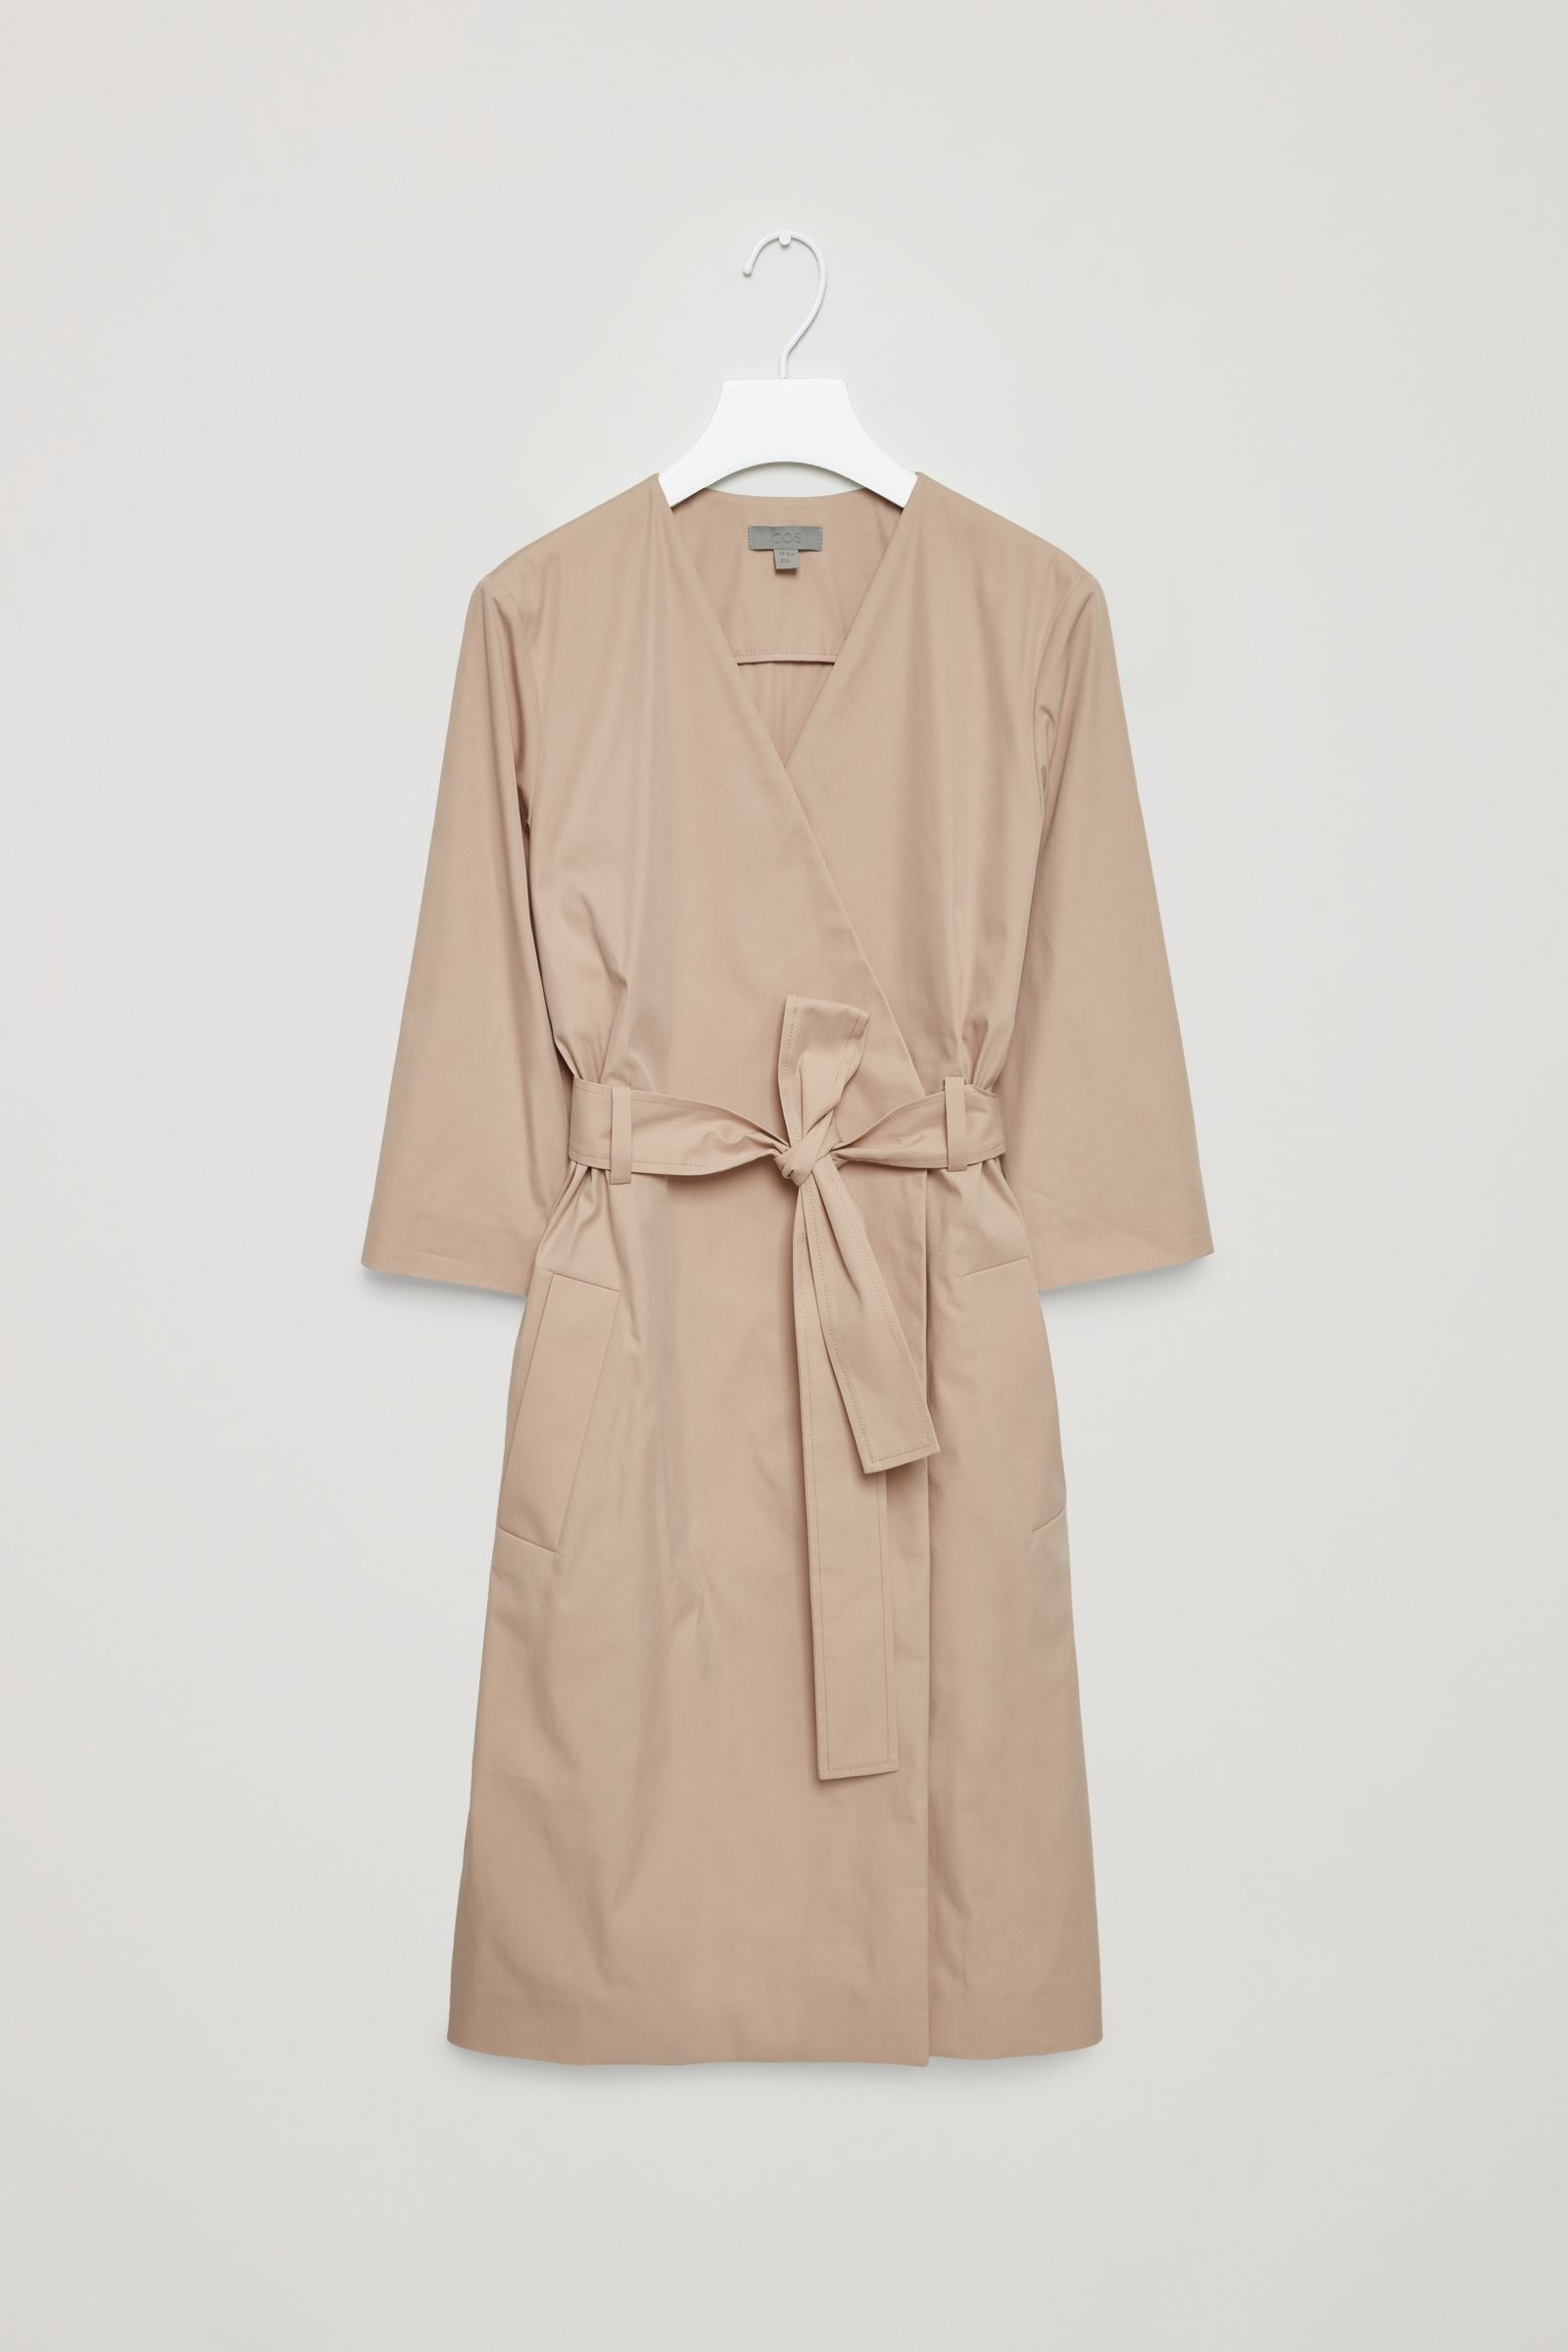 COS | Trench dress